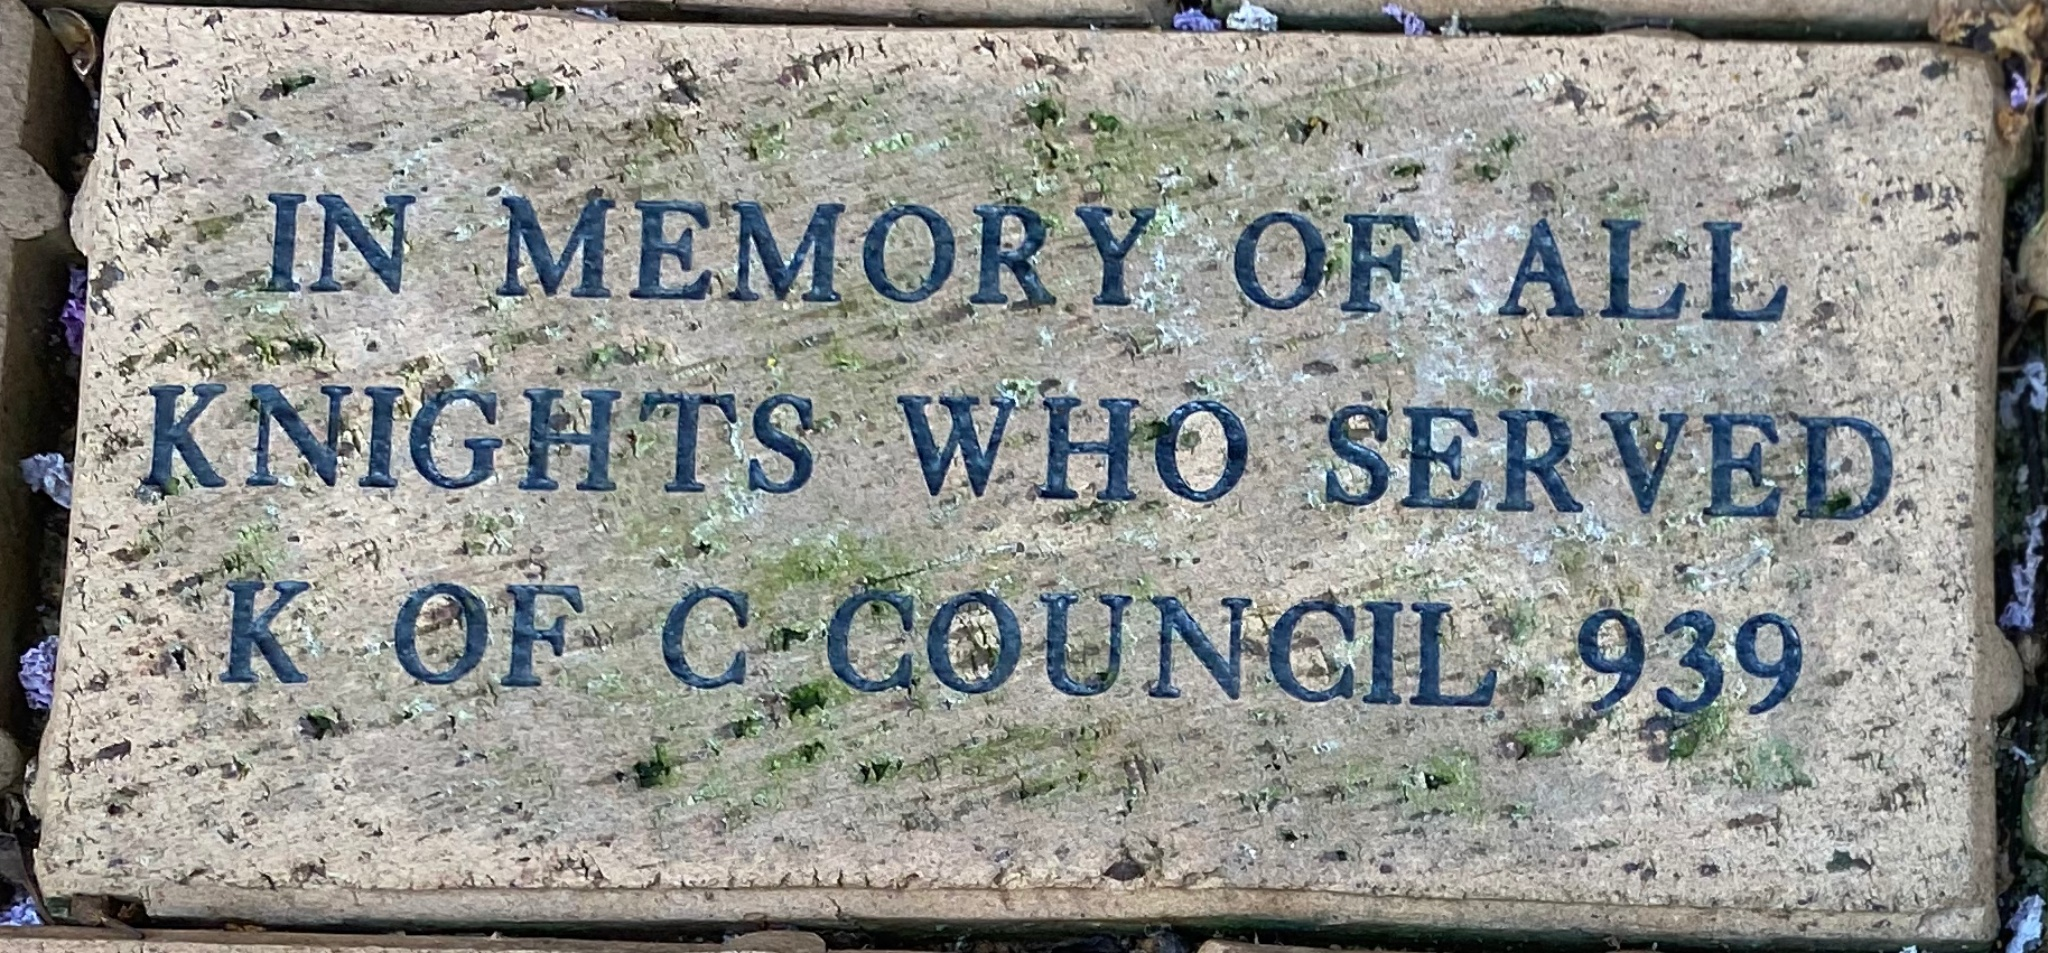 IN MEMORY OF ALL  KNIGHTS WHO SERVED  K OF C COUNCIL 939